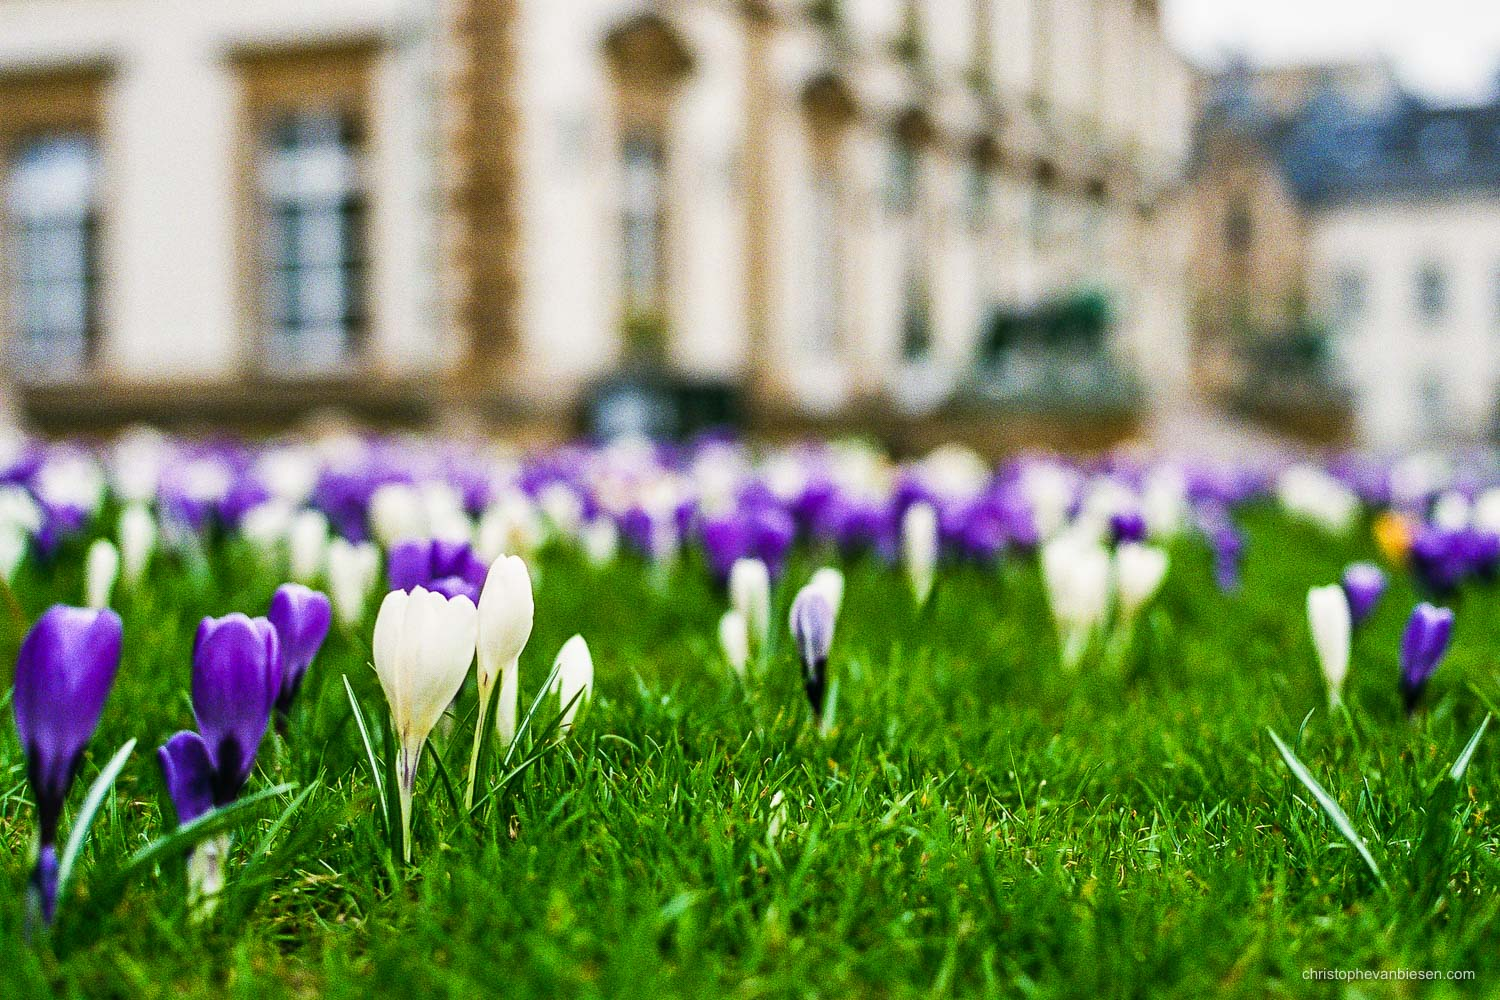 Spring in Luxembourg - Crocus flowers appear everywhere around the city of Luxembourg in celebration of spring's beginning - Defying Winter